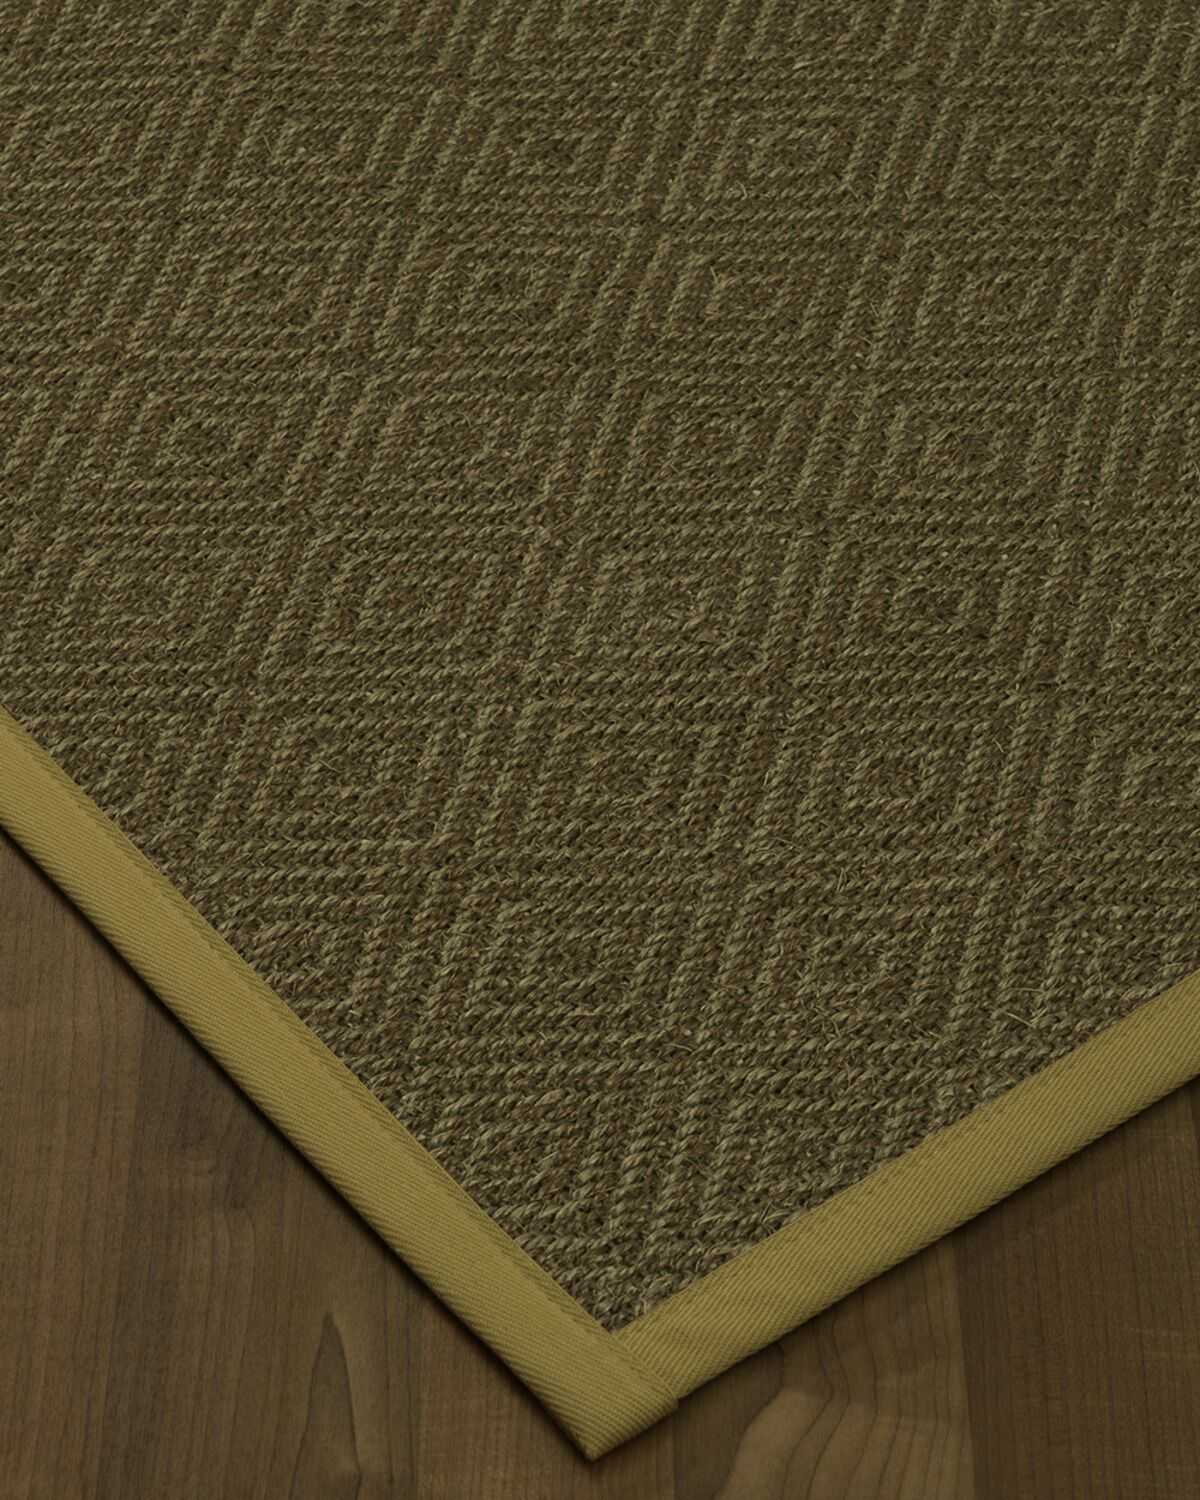 Magnuson Border Hand-Woven Green/Sage Area Rug Rug Size: Rectangle 5' x 8', Rug Pad Included: Yes